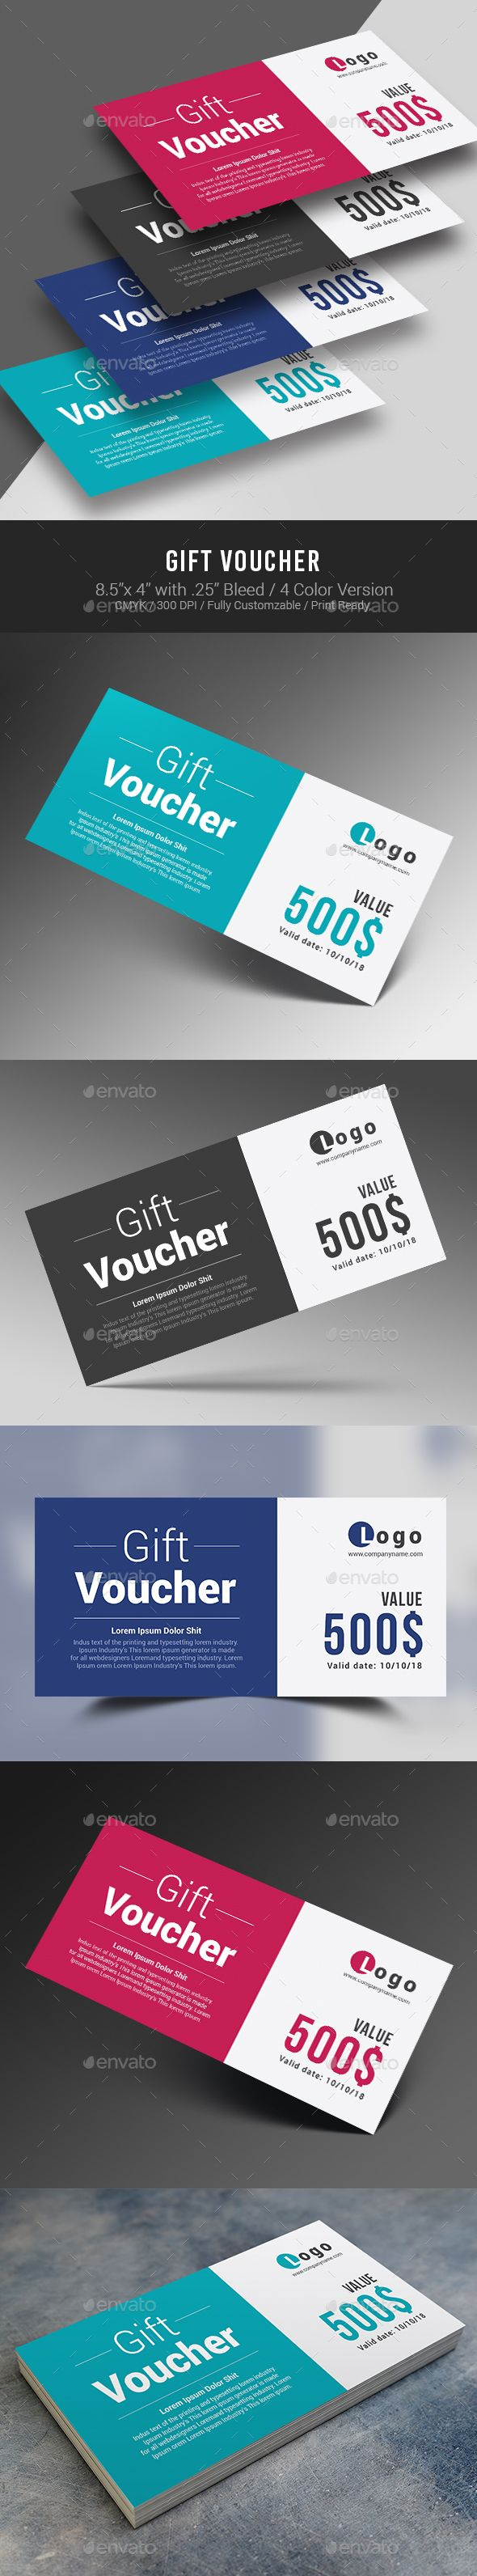 17 best Design | Gift Cards images on Pinterest | Gift cards, Gift ...